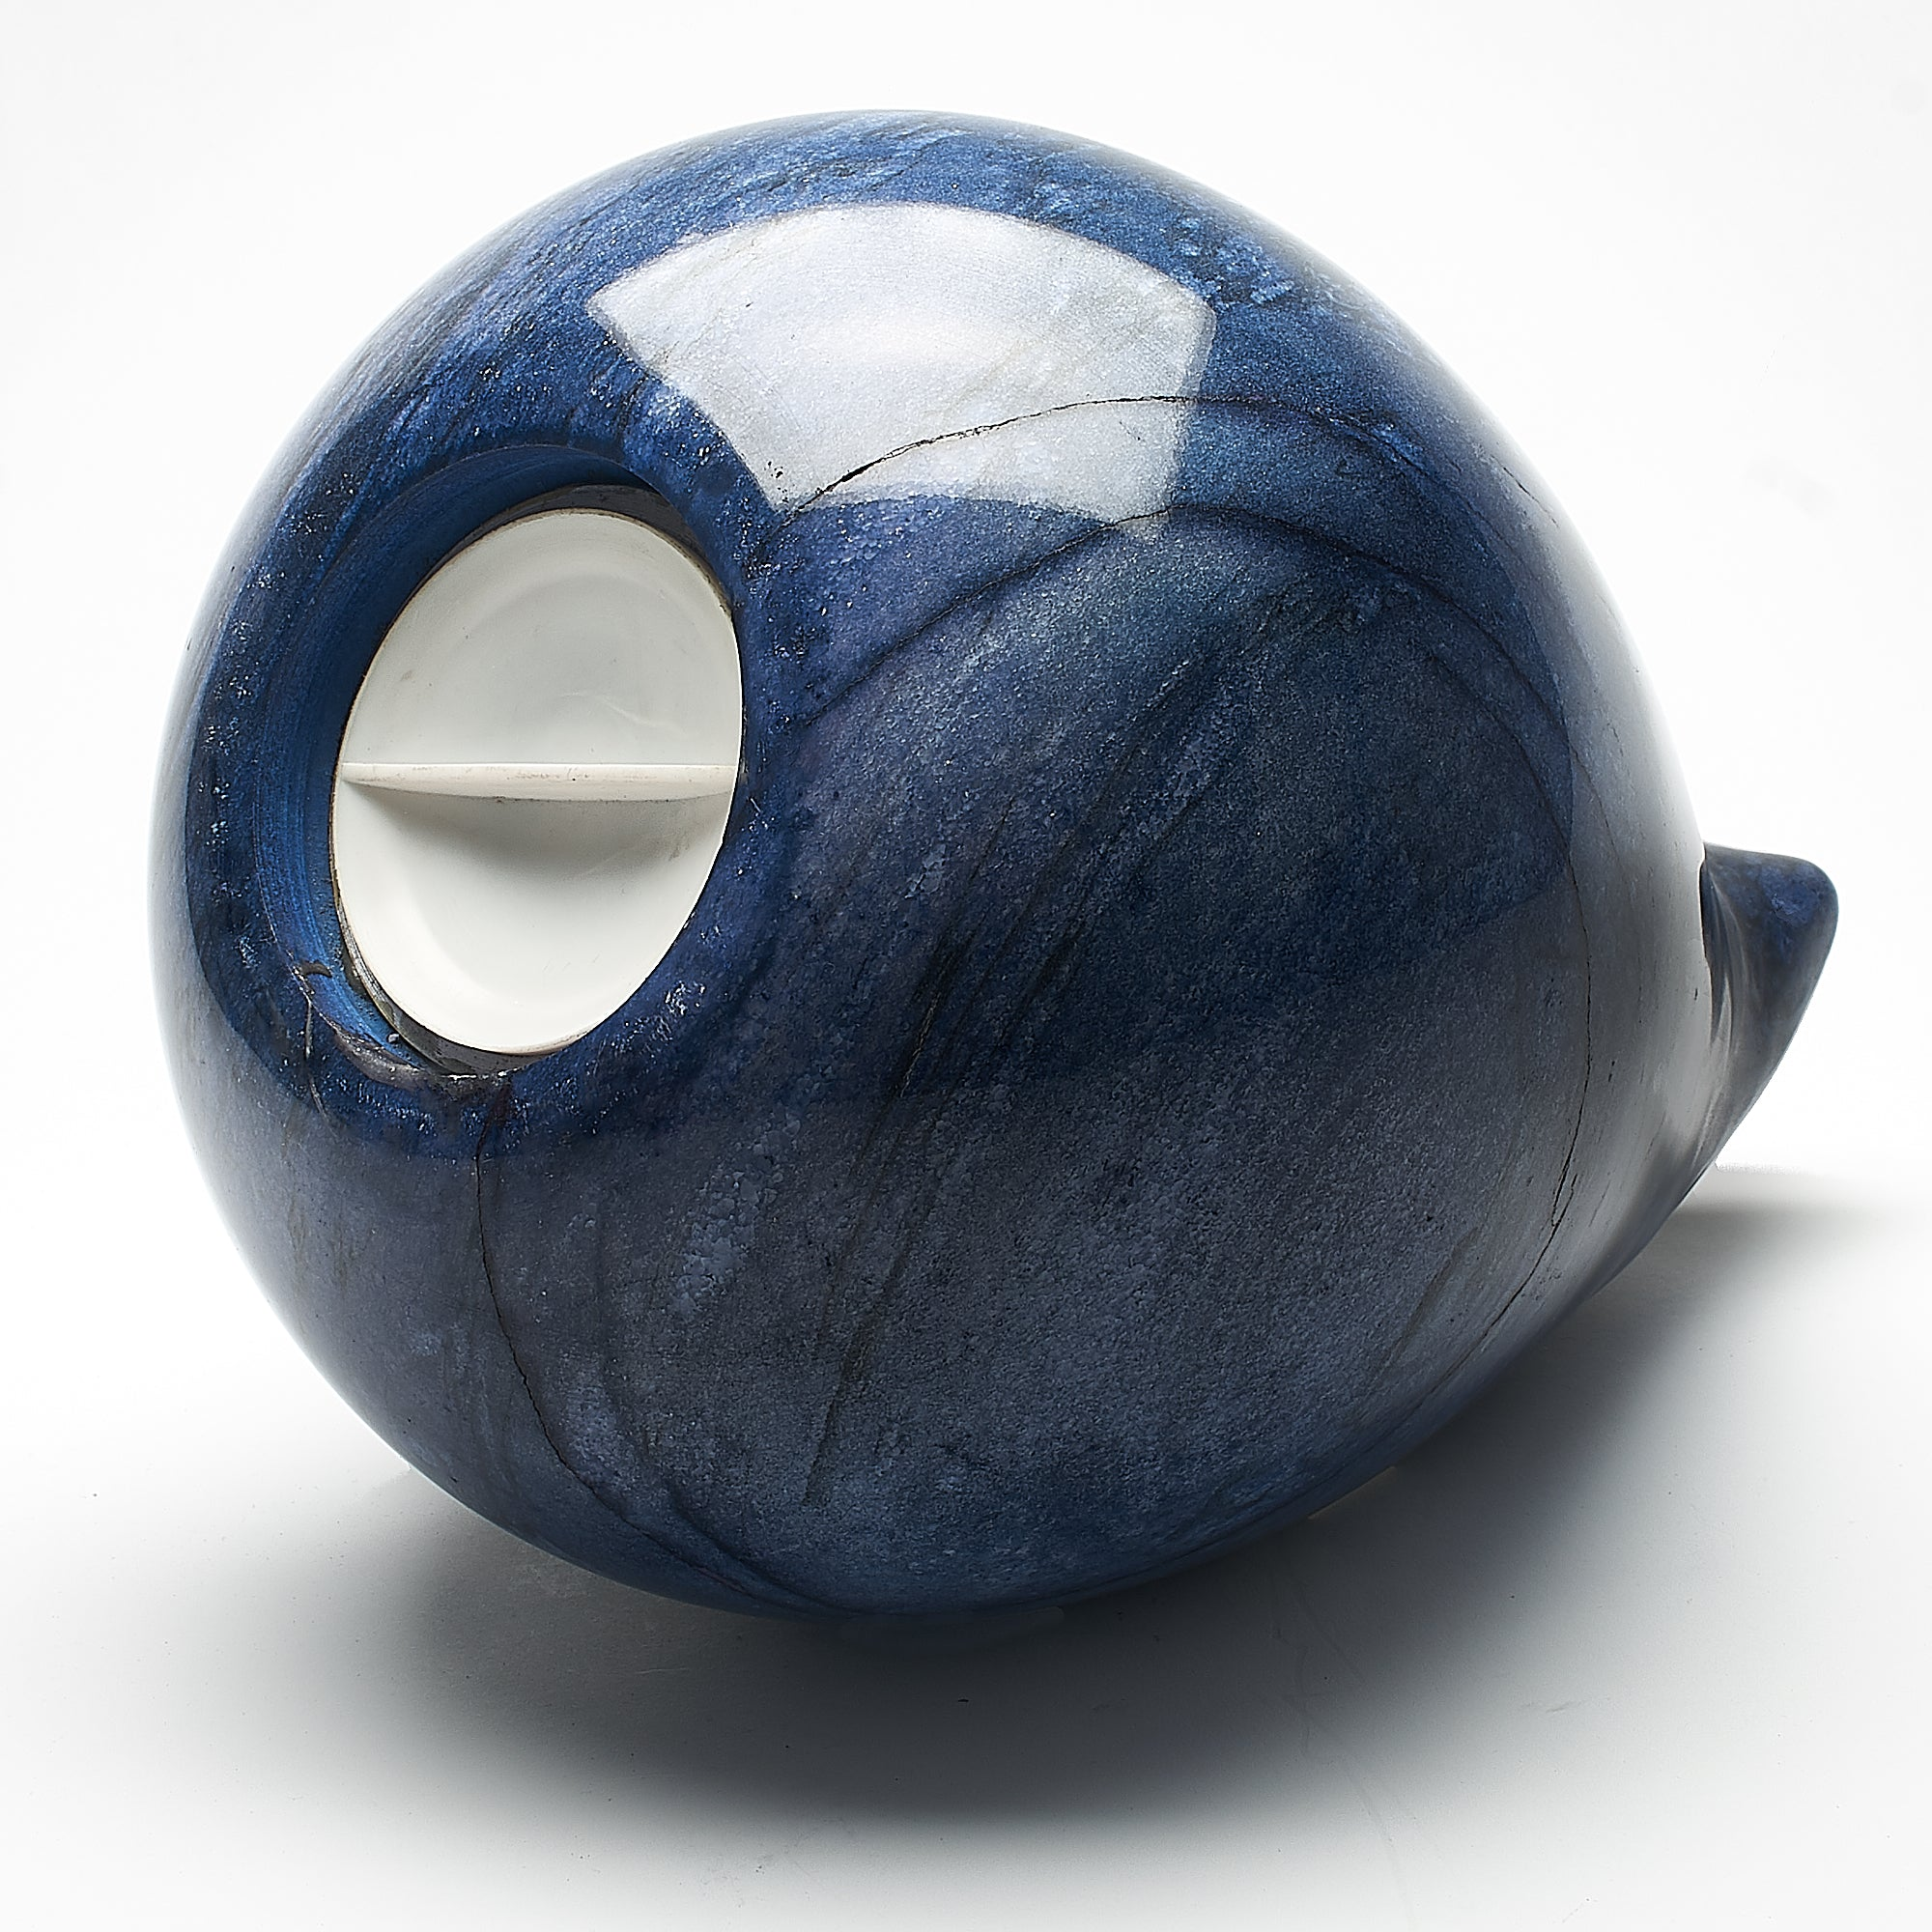 Cremation Urn - Large Luxury Blue Natural Marble Teardrop